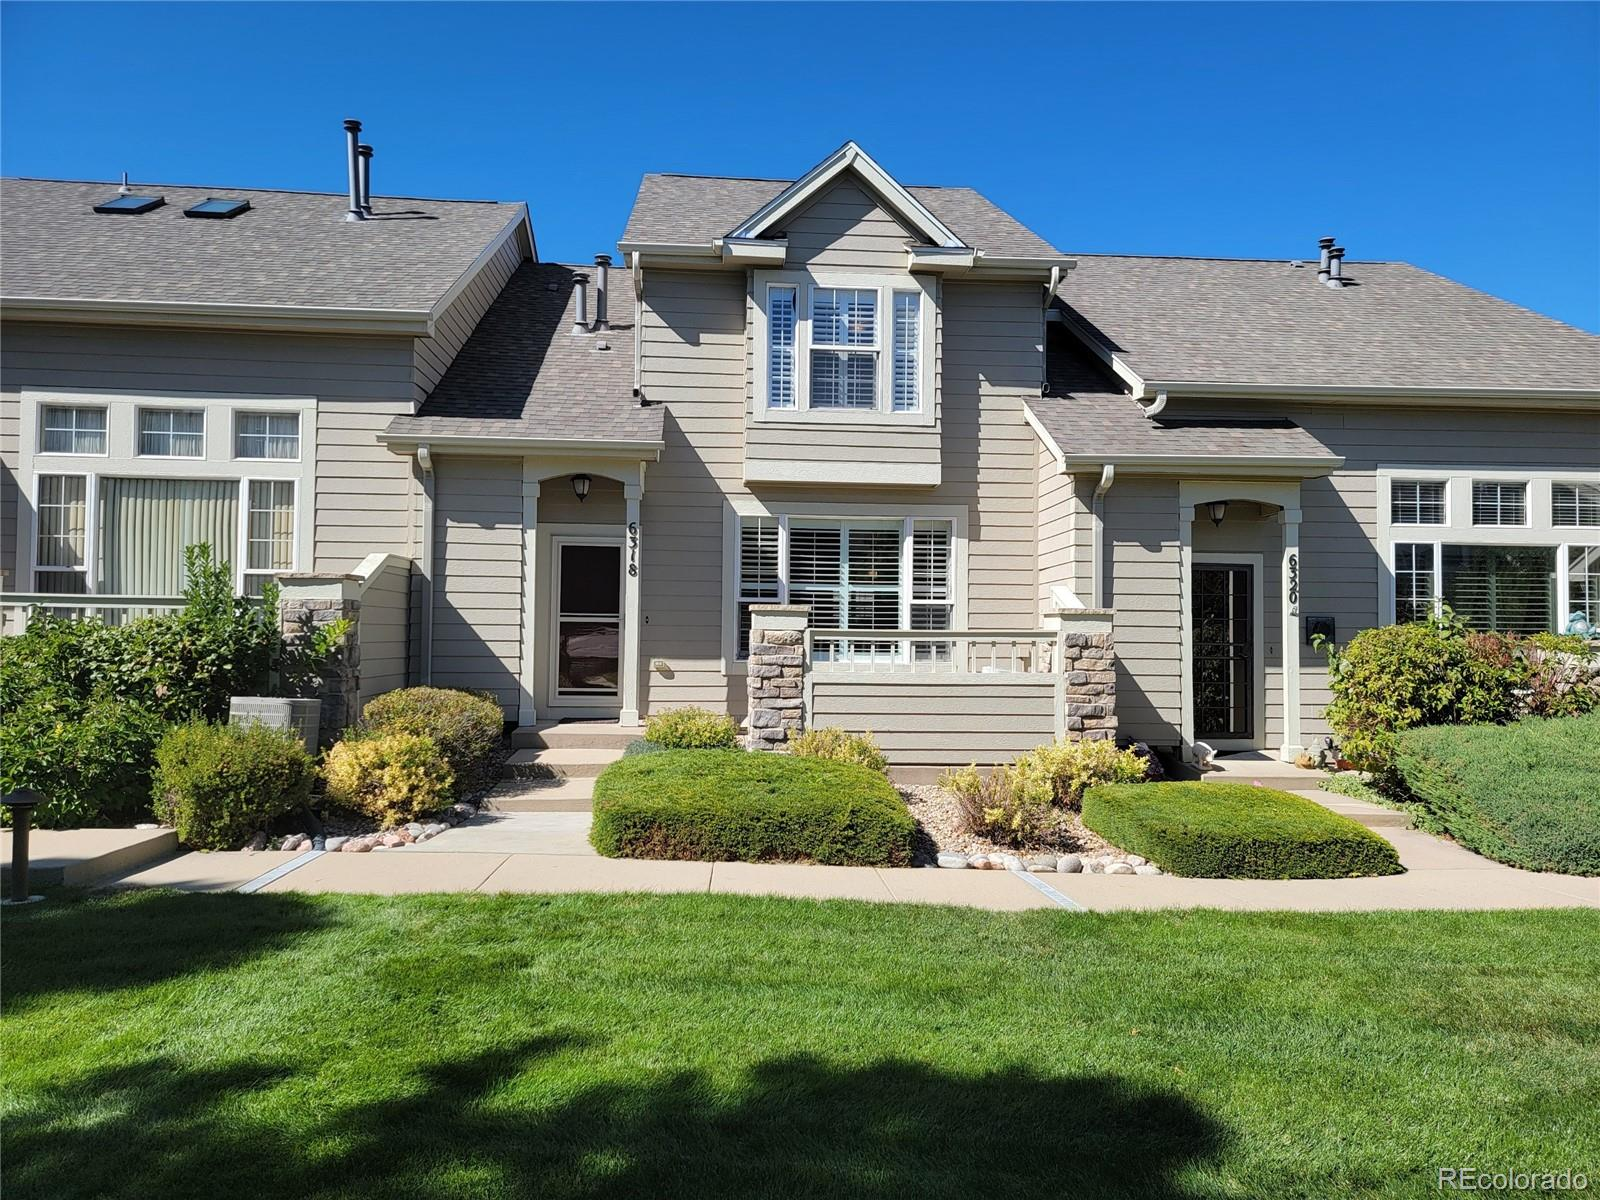 Lovely  pristine unit in Settlers Village close to with easy access to C-470, I-25 and local shopping. The main level features hardwoods, a spacious living room anchored with a gas fireplace, an immaculate kitchen with granite tile counters, Stainless stove , dishwasher and new 3 month old refrigerator. The adjacent dining room easily seats 6-8 for dinner and has bay windows and plantation shutters. The upper level offers a large master suite with vaulted ceilings, a large walk in closet and a 5 piece bath . Adjacent is a second master suite with a 3 piece private bath. All upper rooms feature Plantation shutters. The lower level has a finished bonus room with an egress window - great as an office, gym or in a pinch a non conforming bedroom. A large oversized 2 car garage with built in cabinets for additional storage completes this great townhome!!